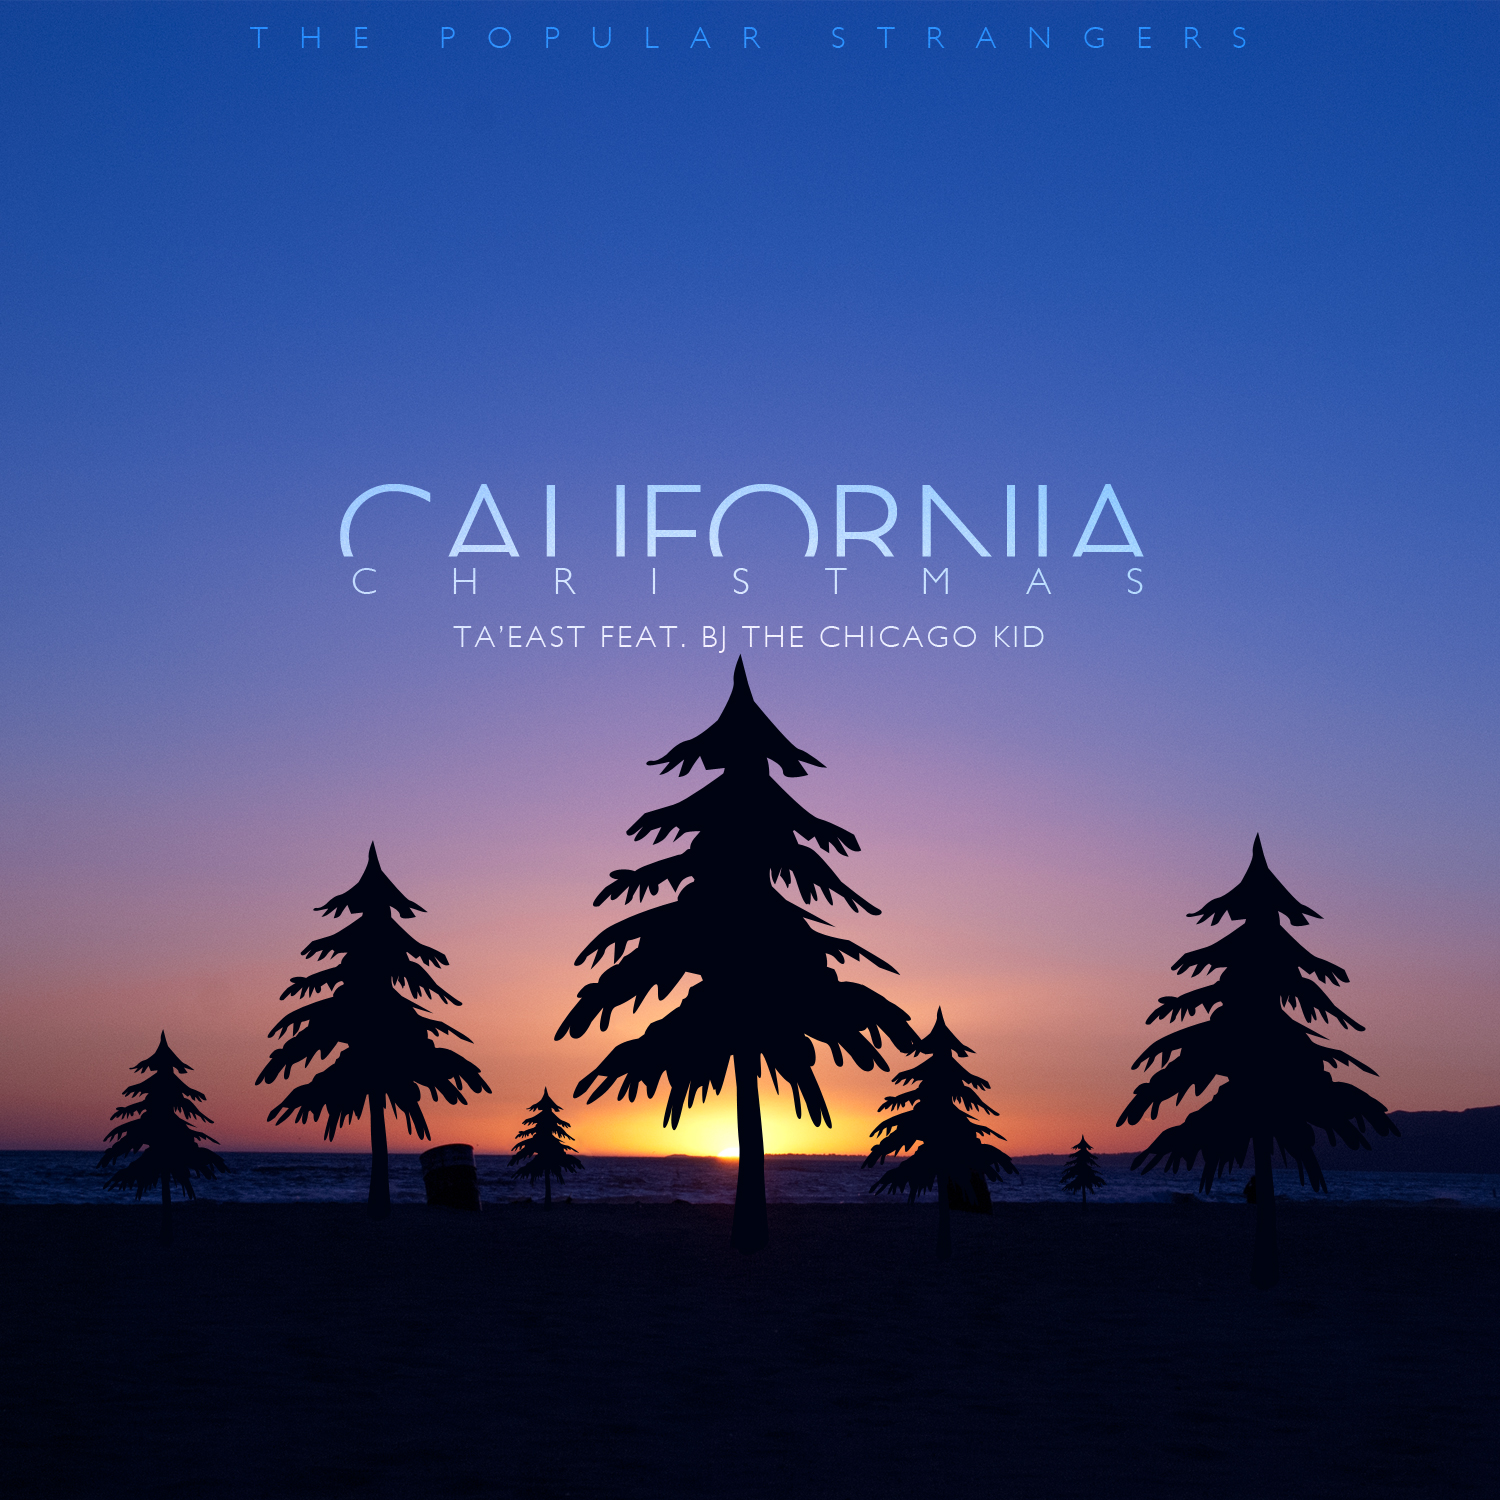 California Christmas.Christmas In California Boards Board By Natalie Gordman